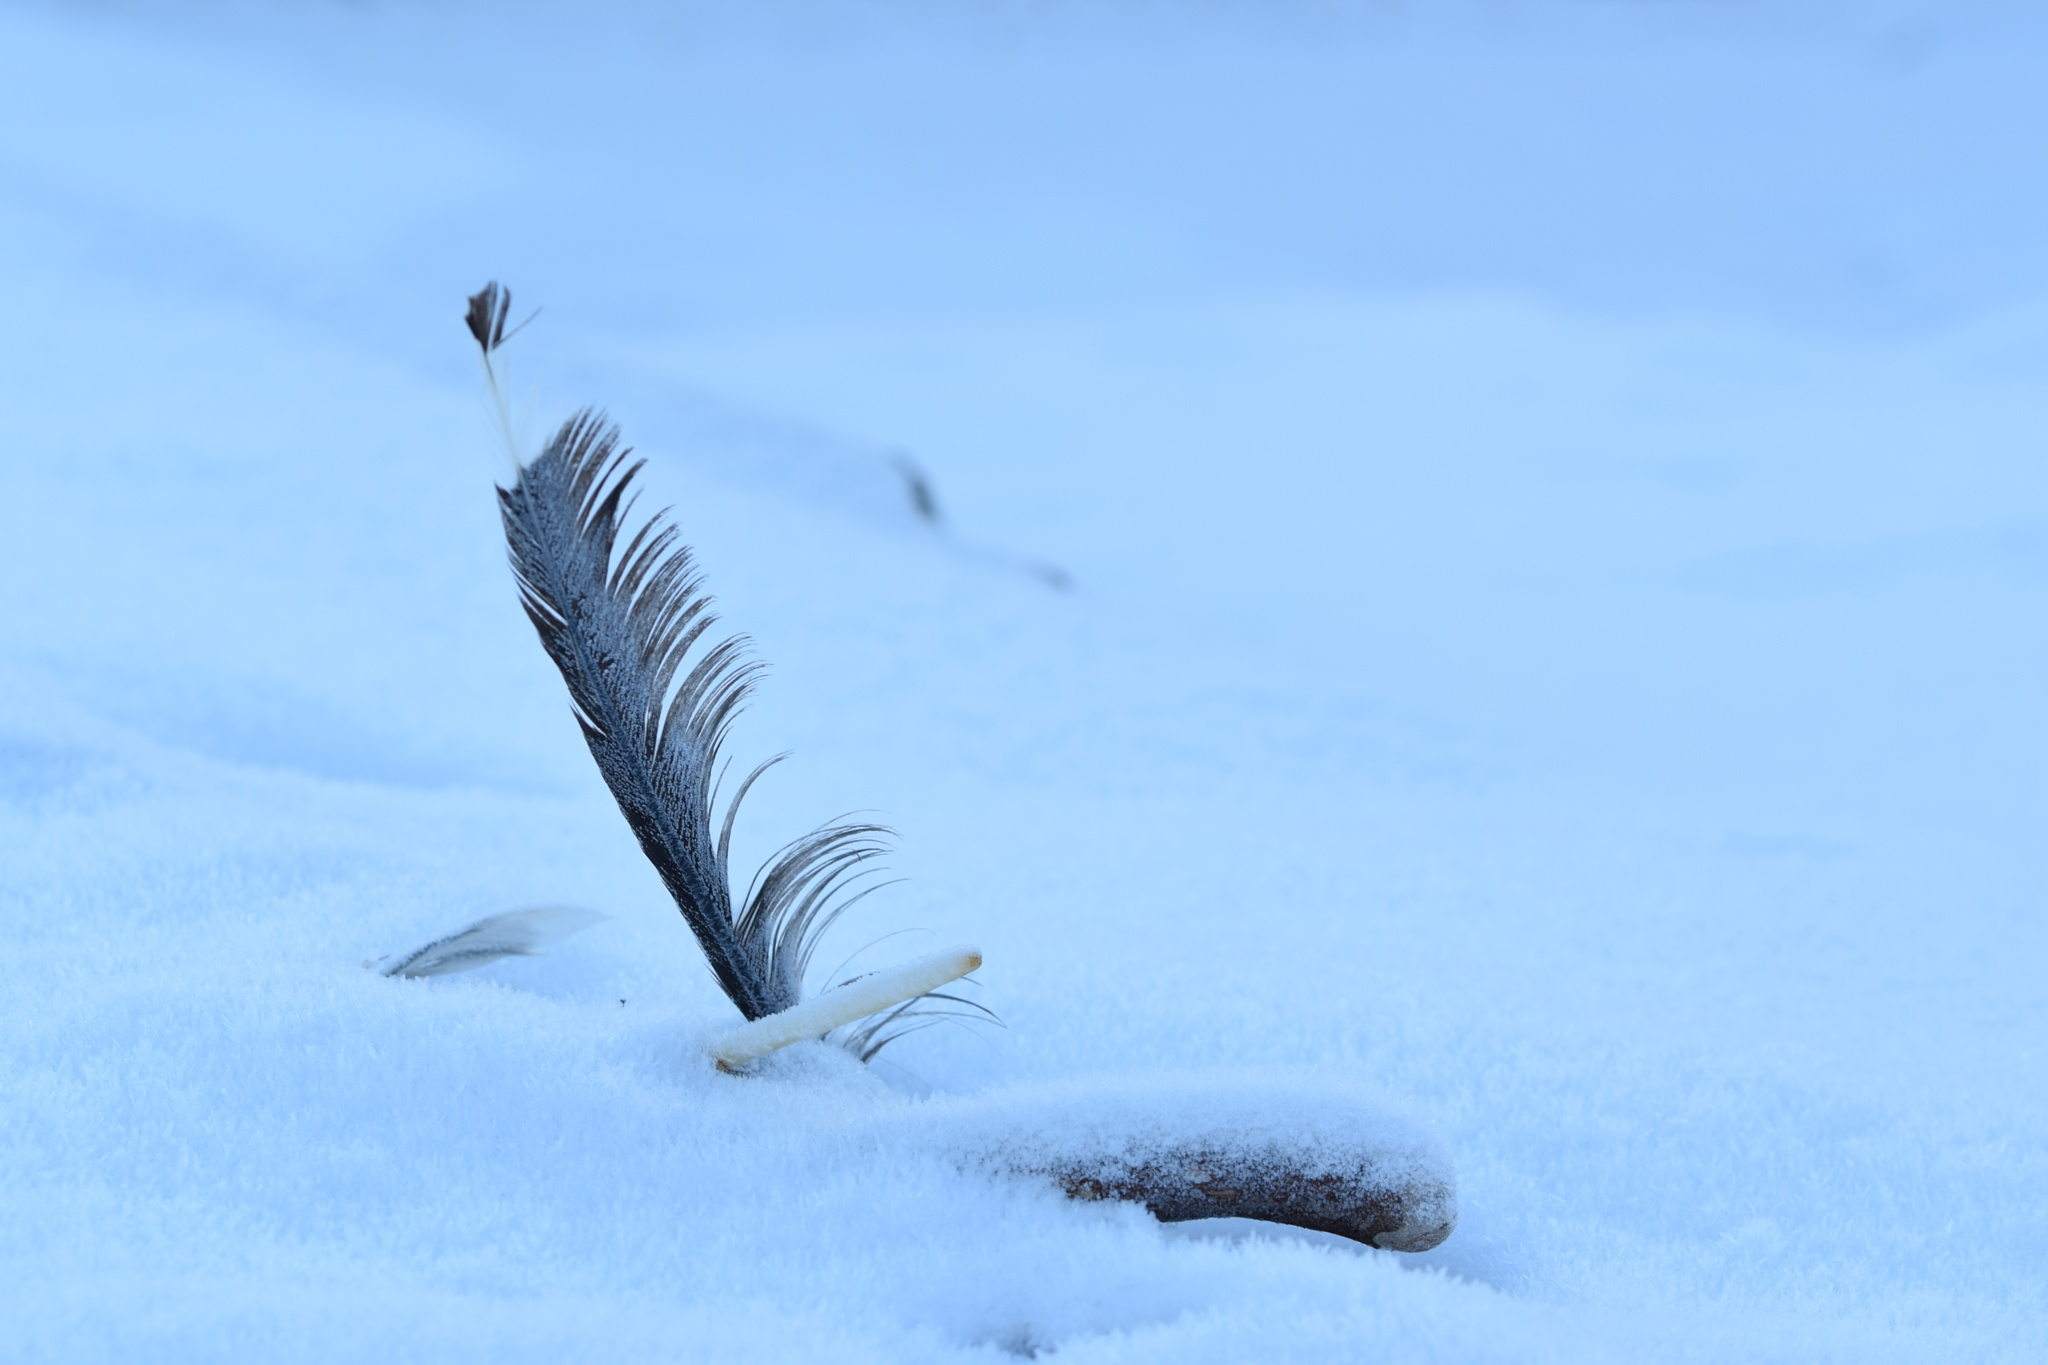 Frosty Feather by Isabelle Packendorff